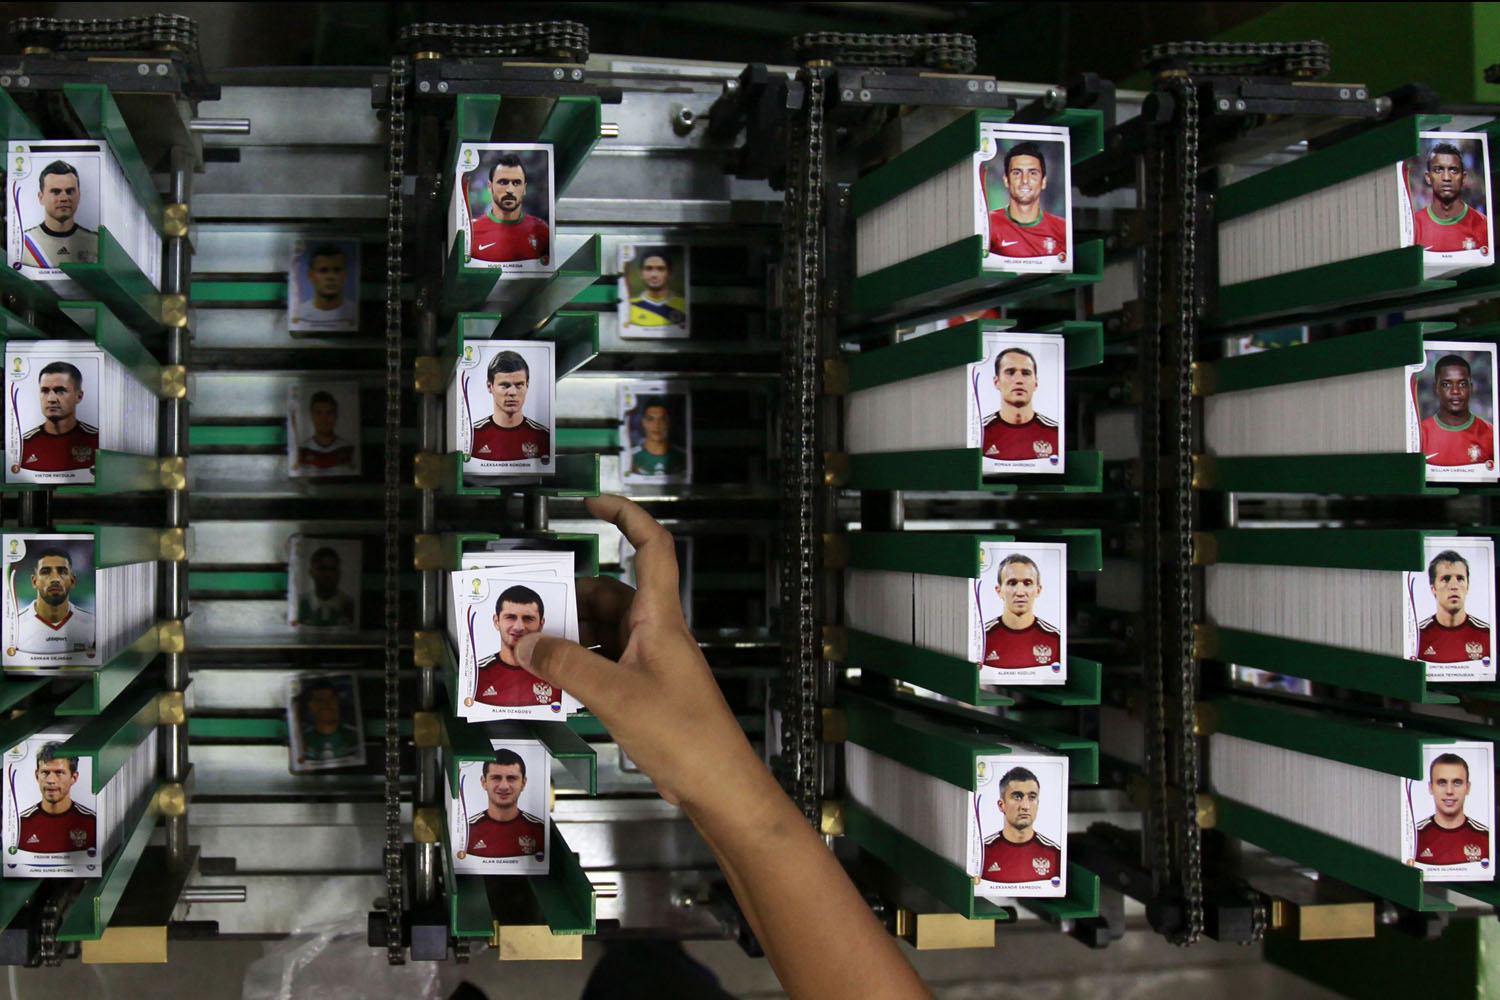 May 5, 2014. A labourer works at the assembly line of Panini's factory, where the FIFA's Brazil World Cup stickers and albums are been produced, in Tambore, an industrial suburb north of Sao Paulo, Brazil.